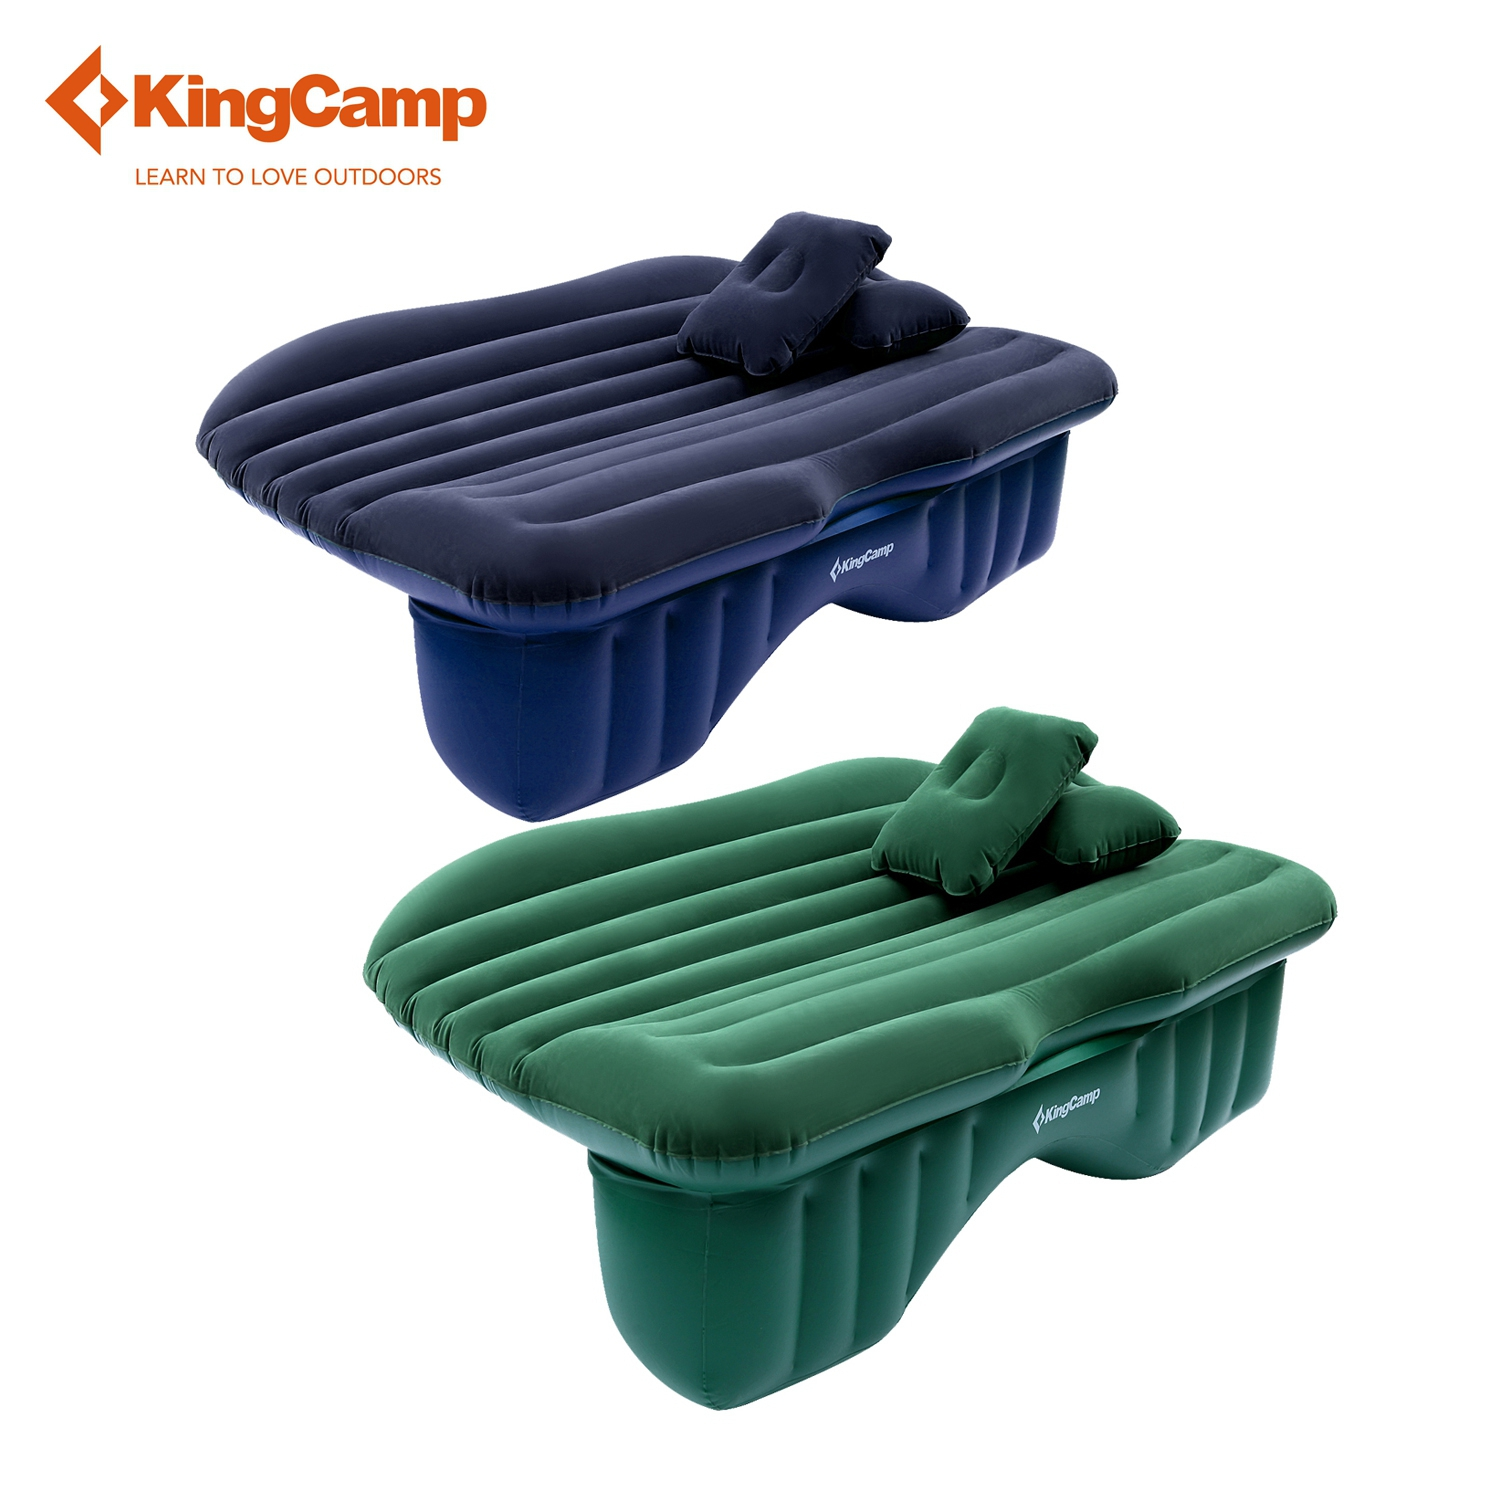 kingcamp portable outdoor car inflatable mattress flock backseat airbed mat with oxford sack for self - Air Bed Mattress